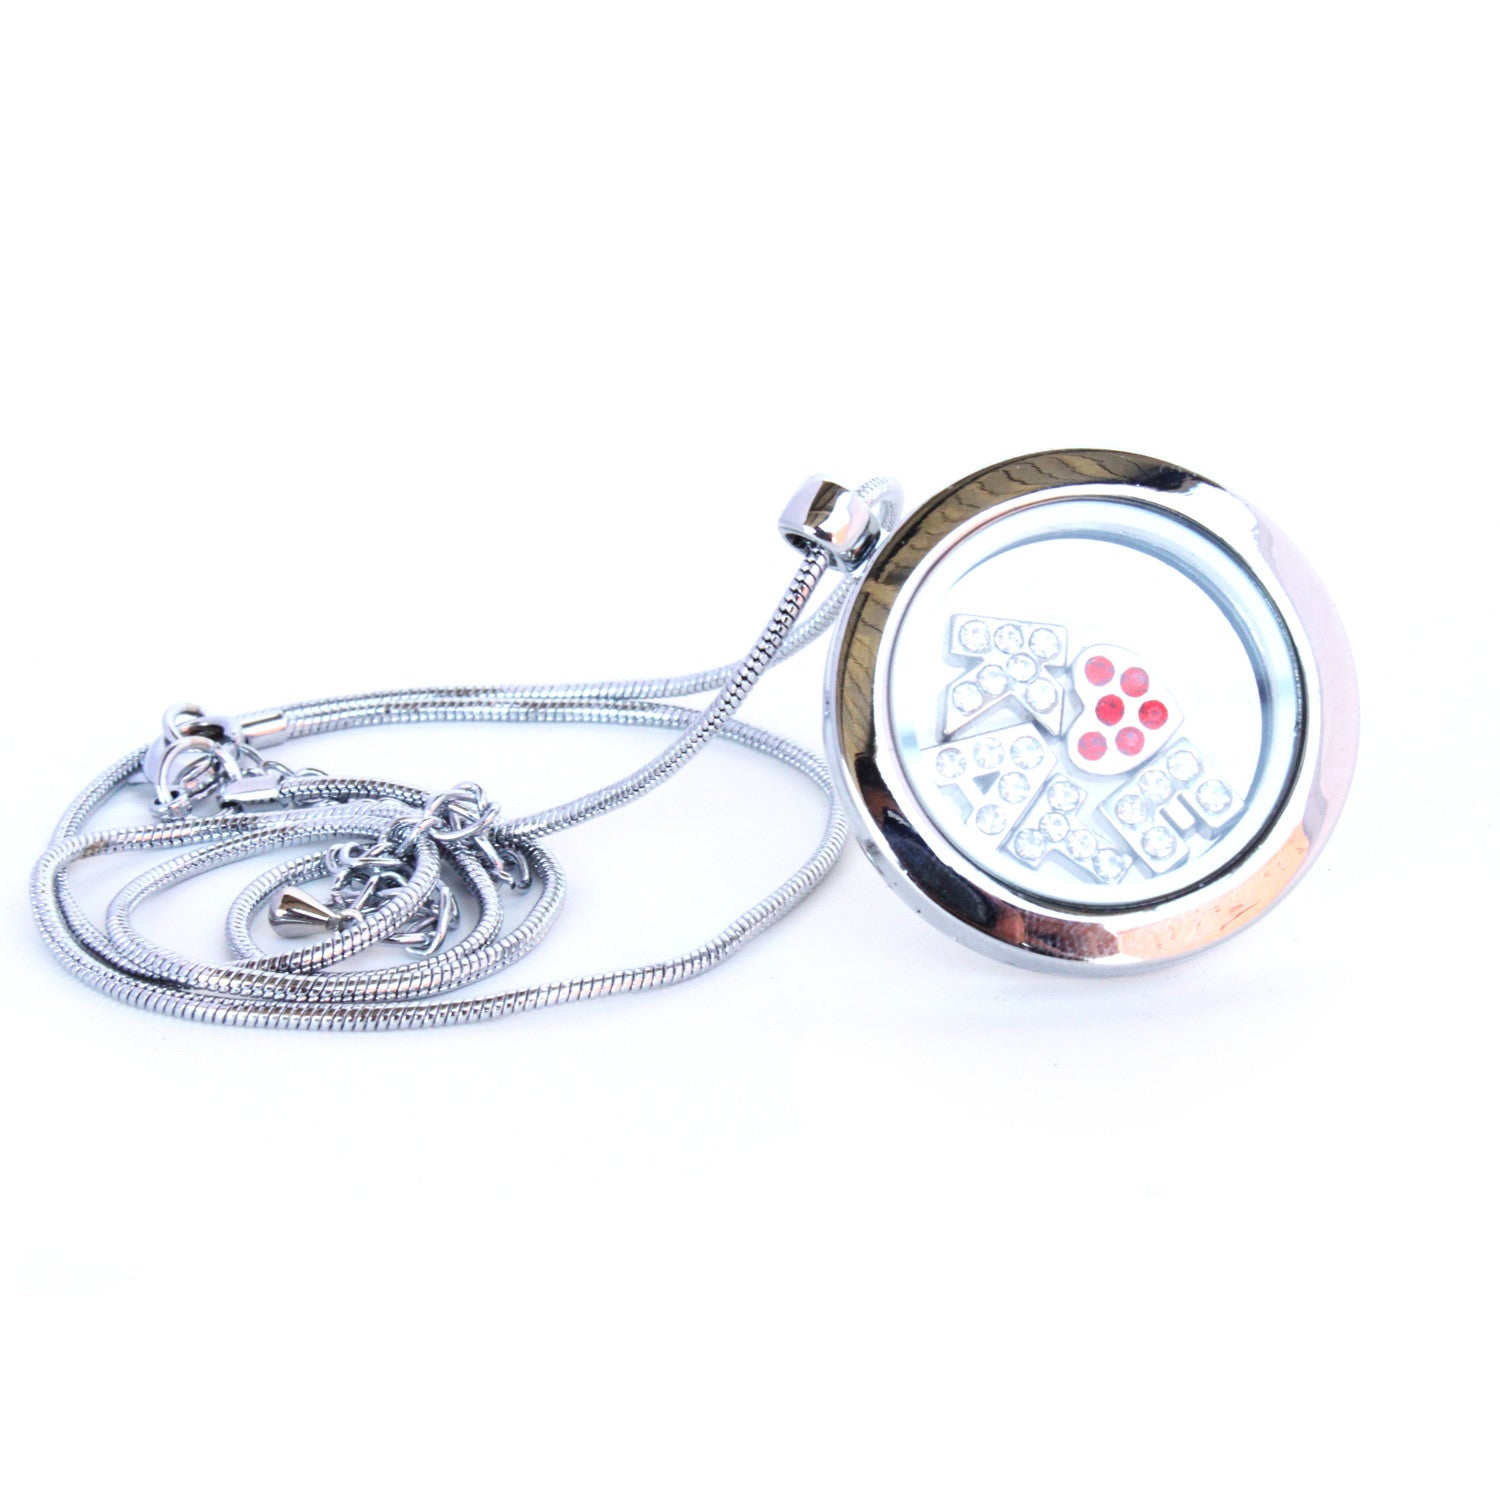 Floating Locket Necklace with 6 Mini Charms and Matching Chain (Silver No Stone Circle)